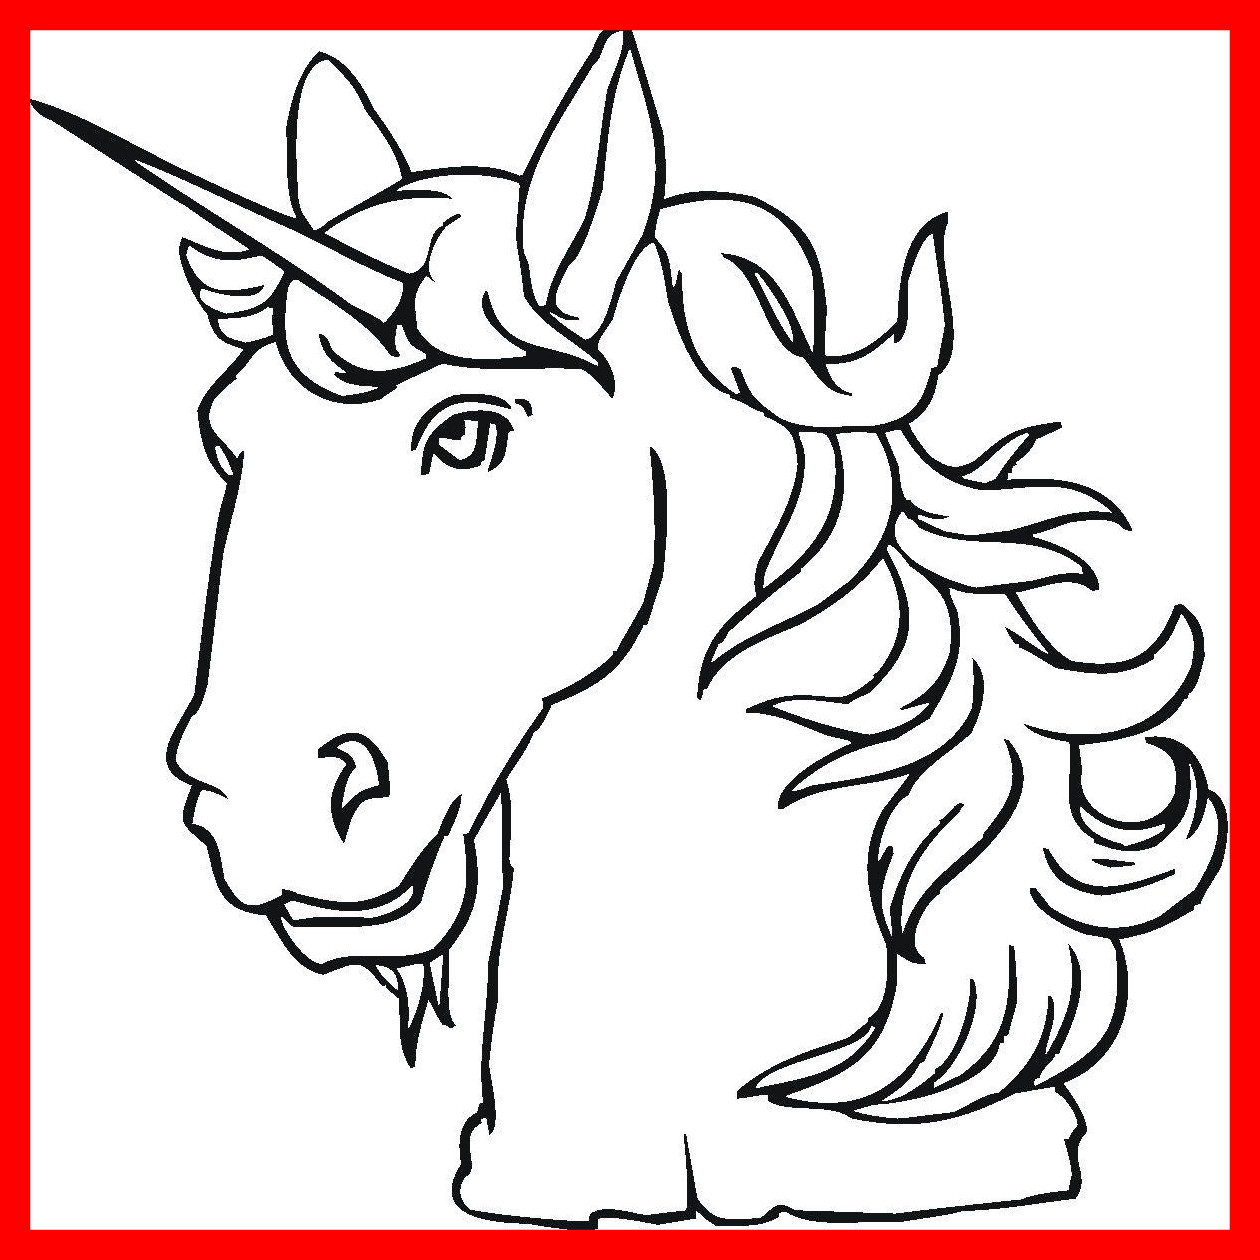 Horse Head Coloring Pages At Getcolorings